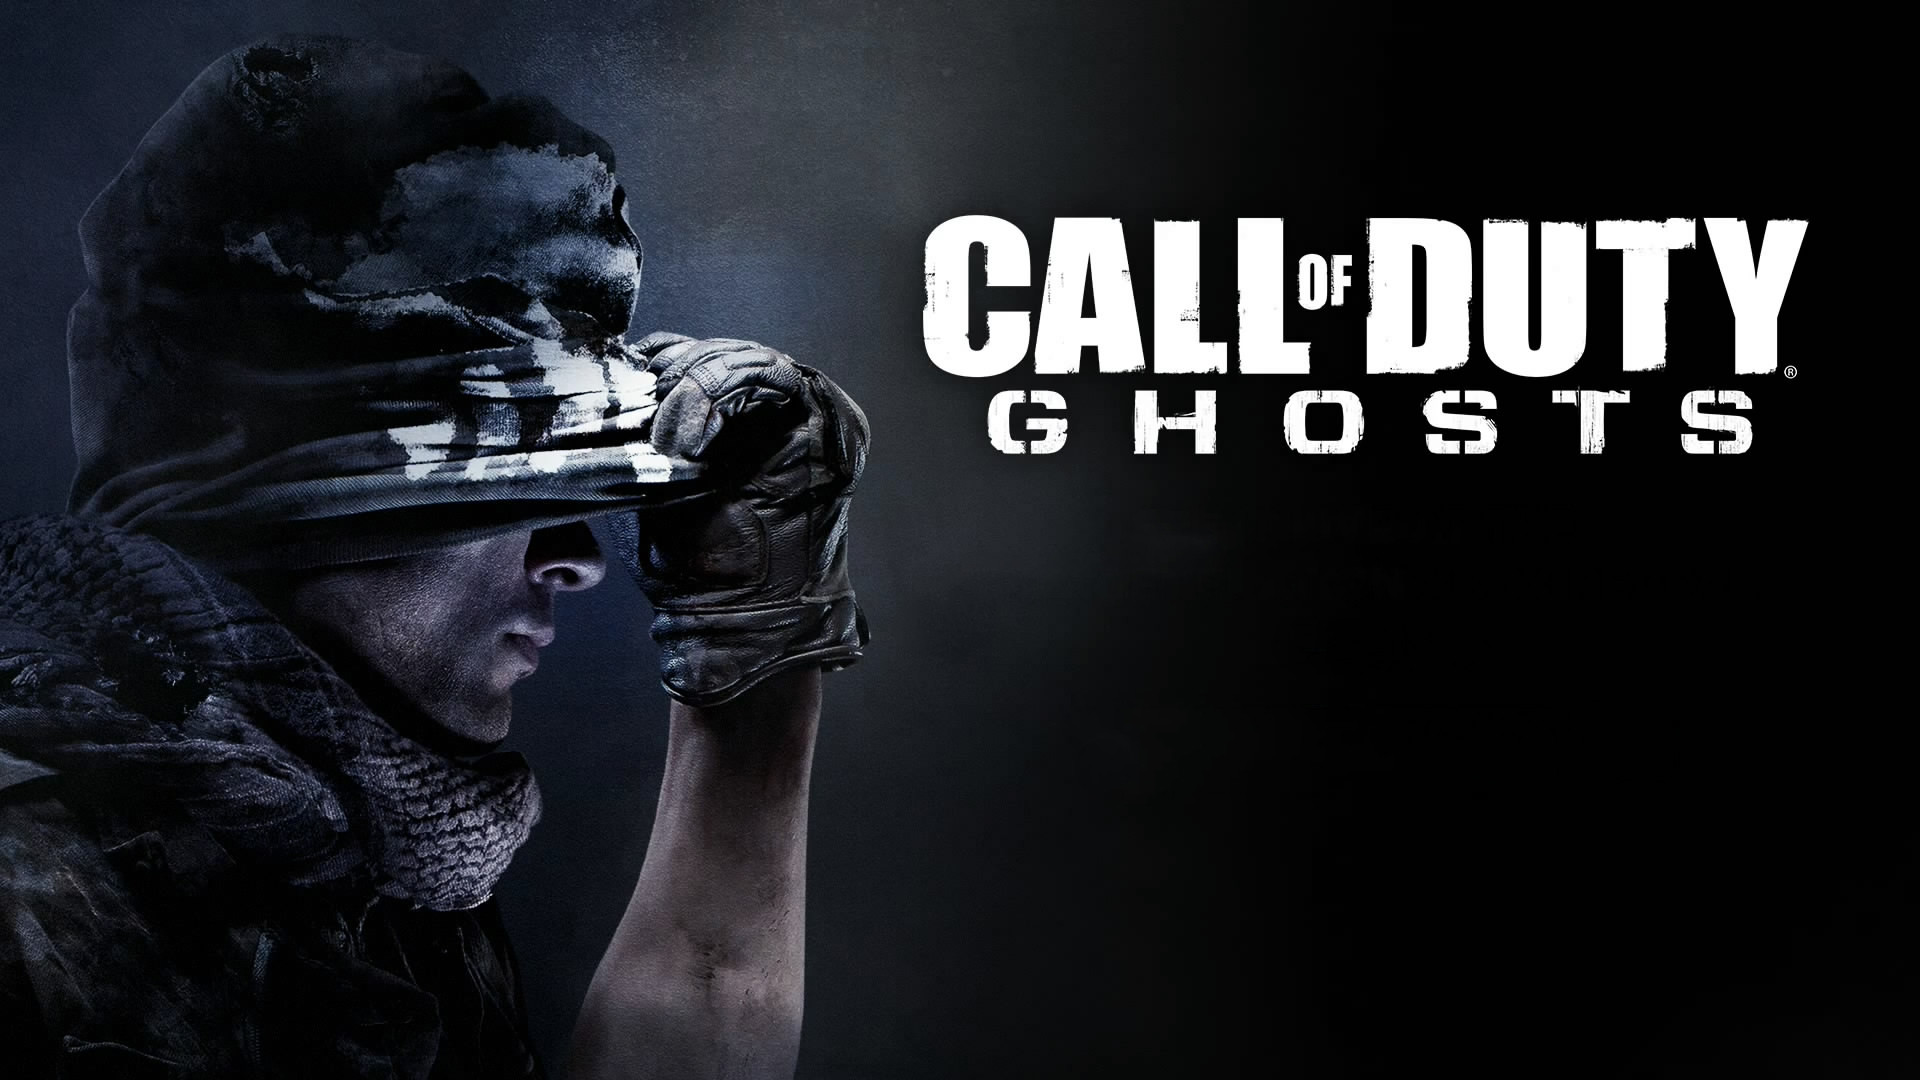 Call of Duty: Ghosts Onslaught DLC Pack 1 Free Trial Weekend Kicks Off Friday, 21st March On Xbox Live